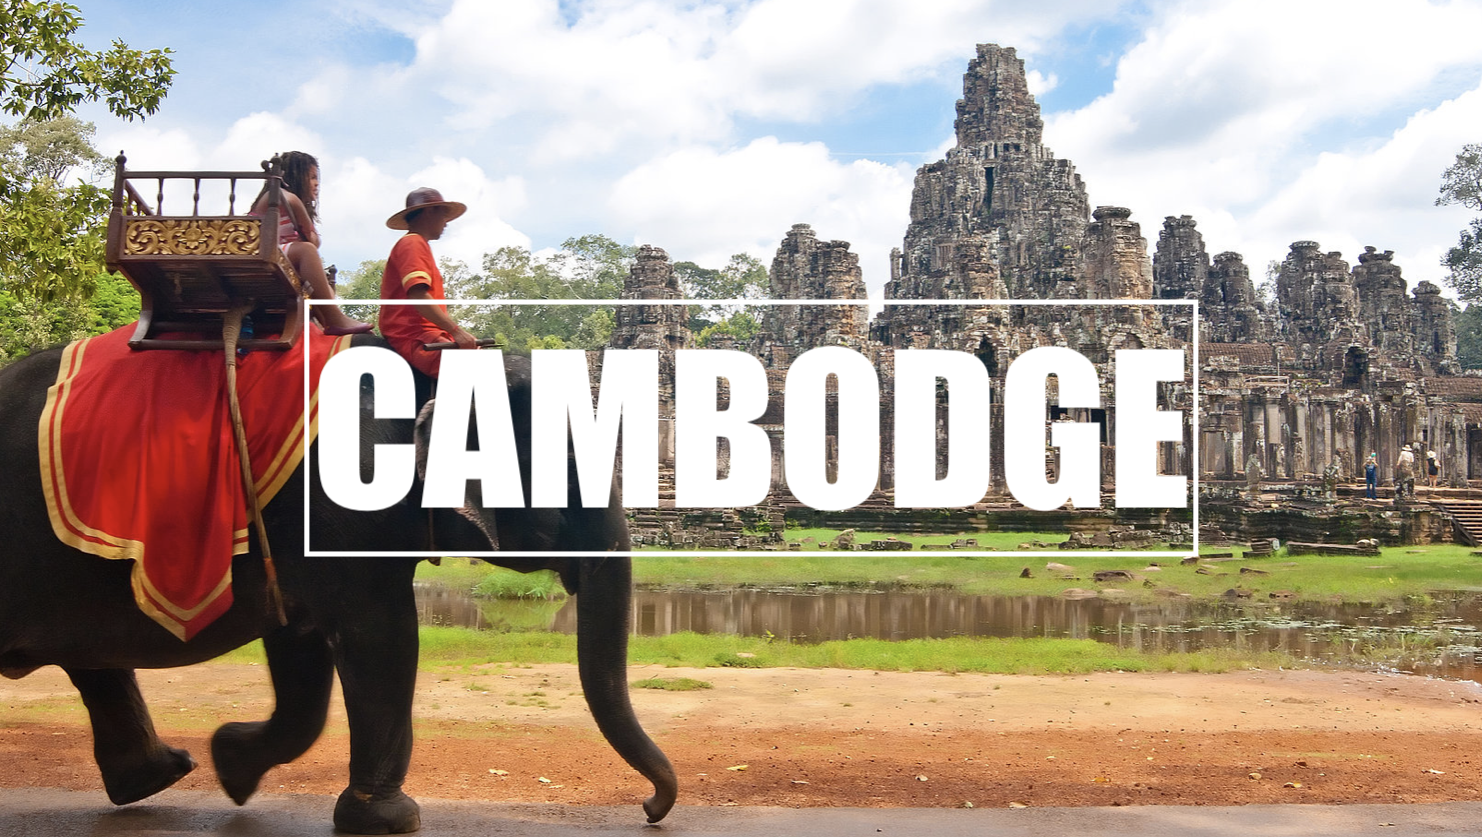 Production executive Cambodge